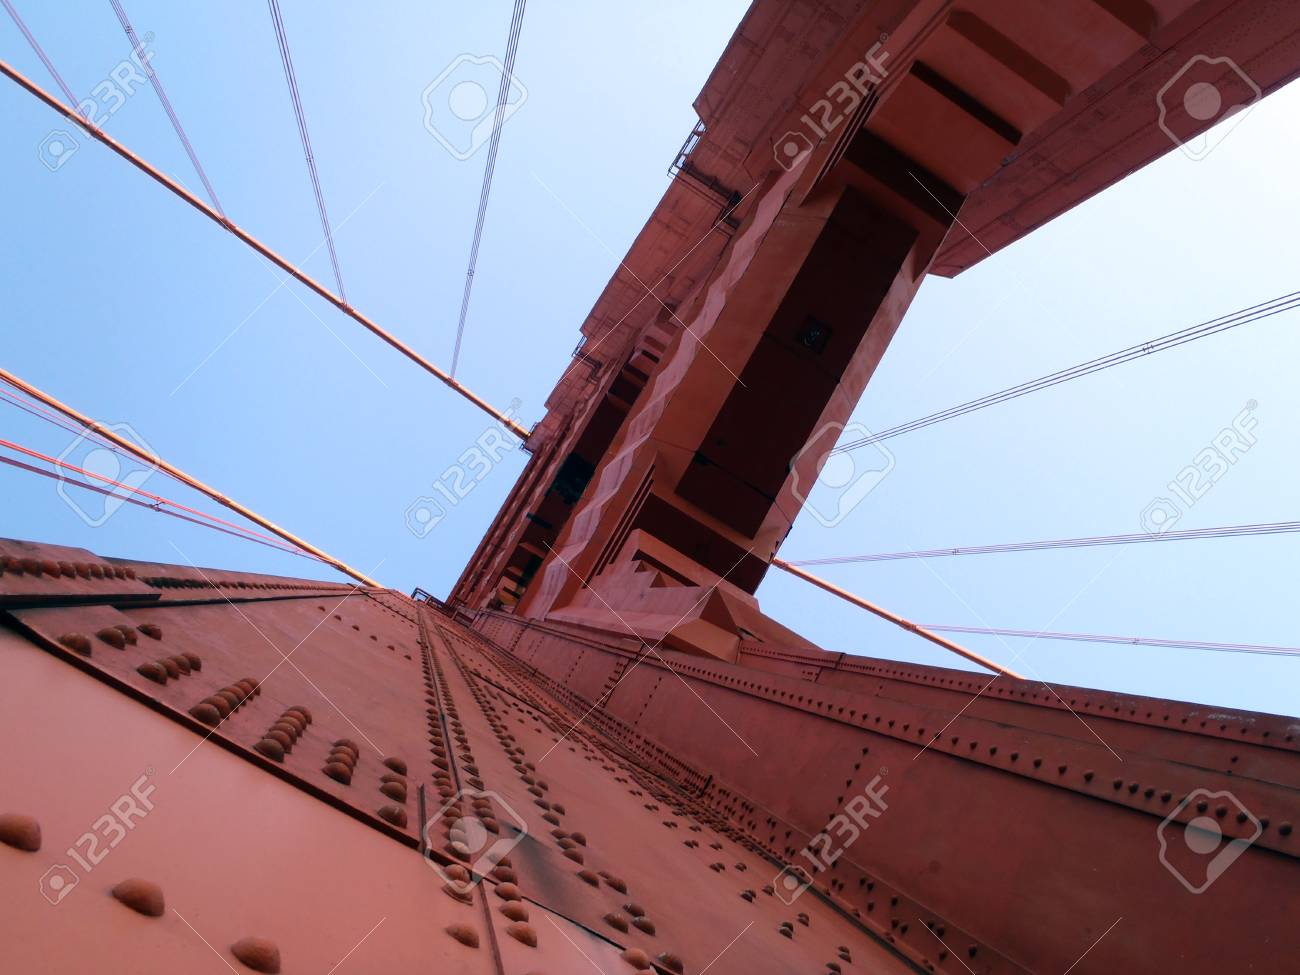 Upward perspective of Art Deco Tower and supporting cables on..